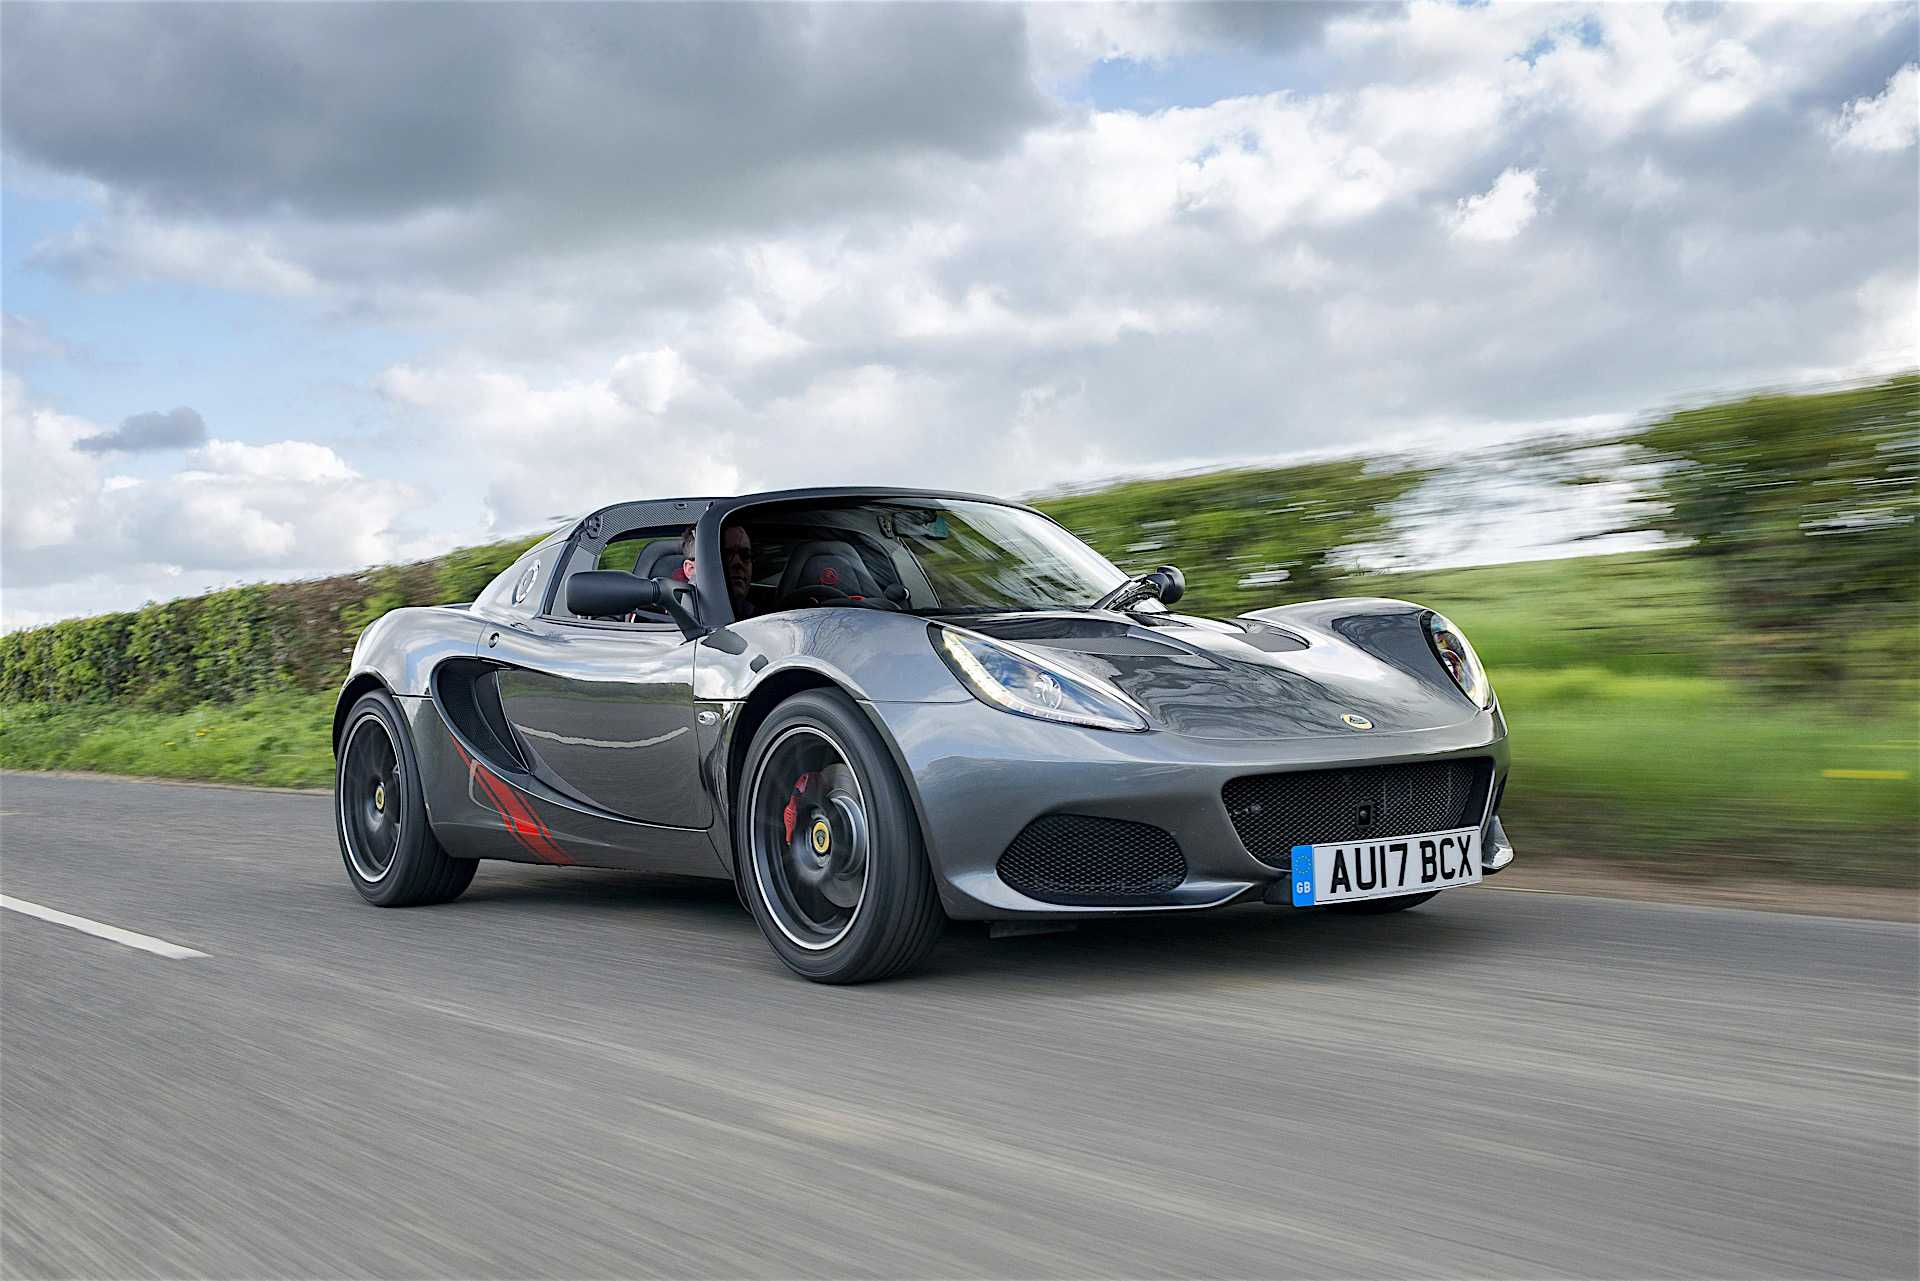 Lotus is Optimistic Enough to go All EVs with their Future Cars